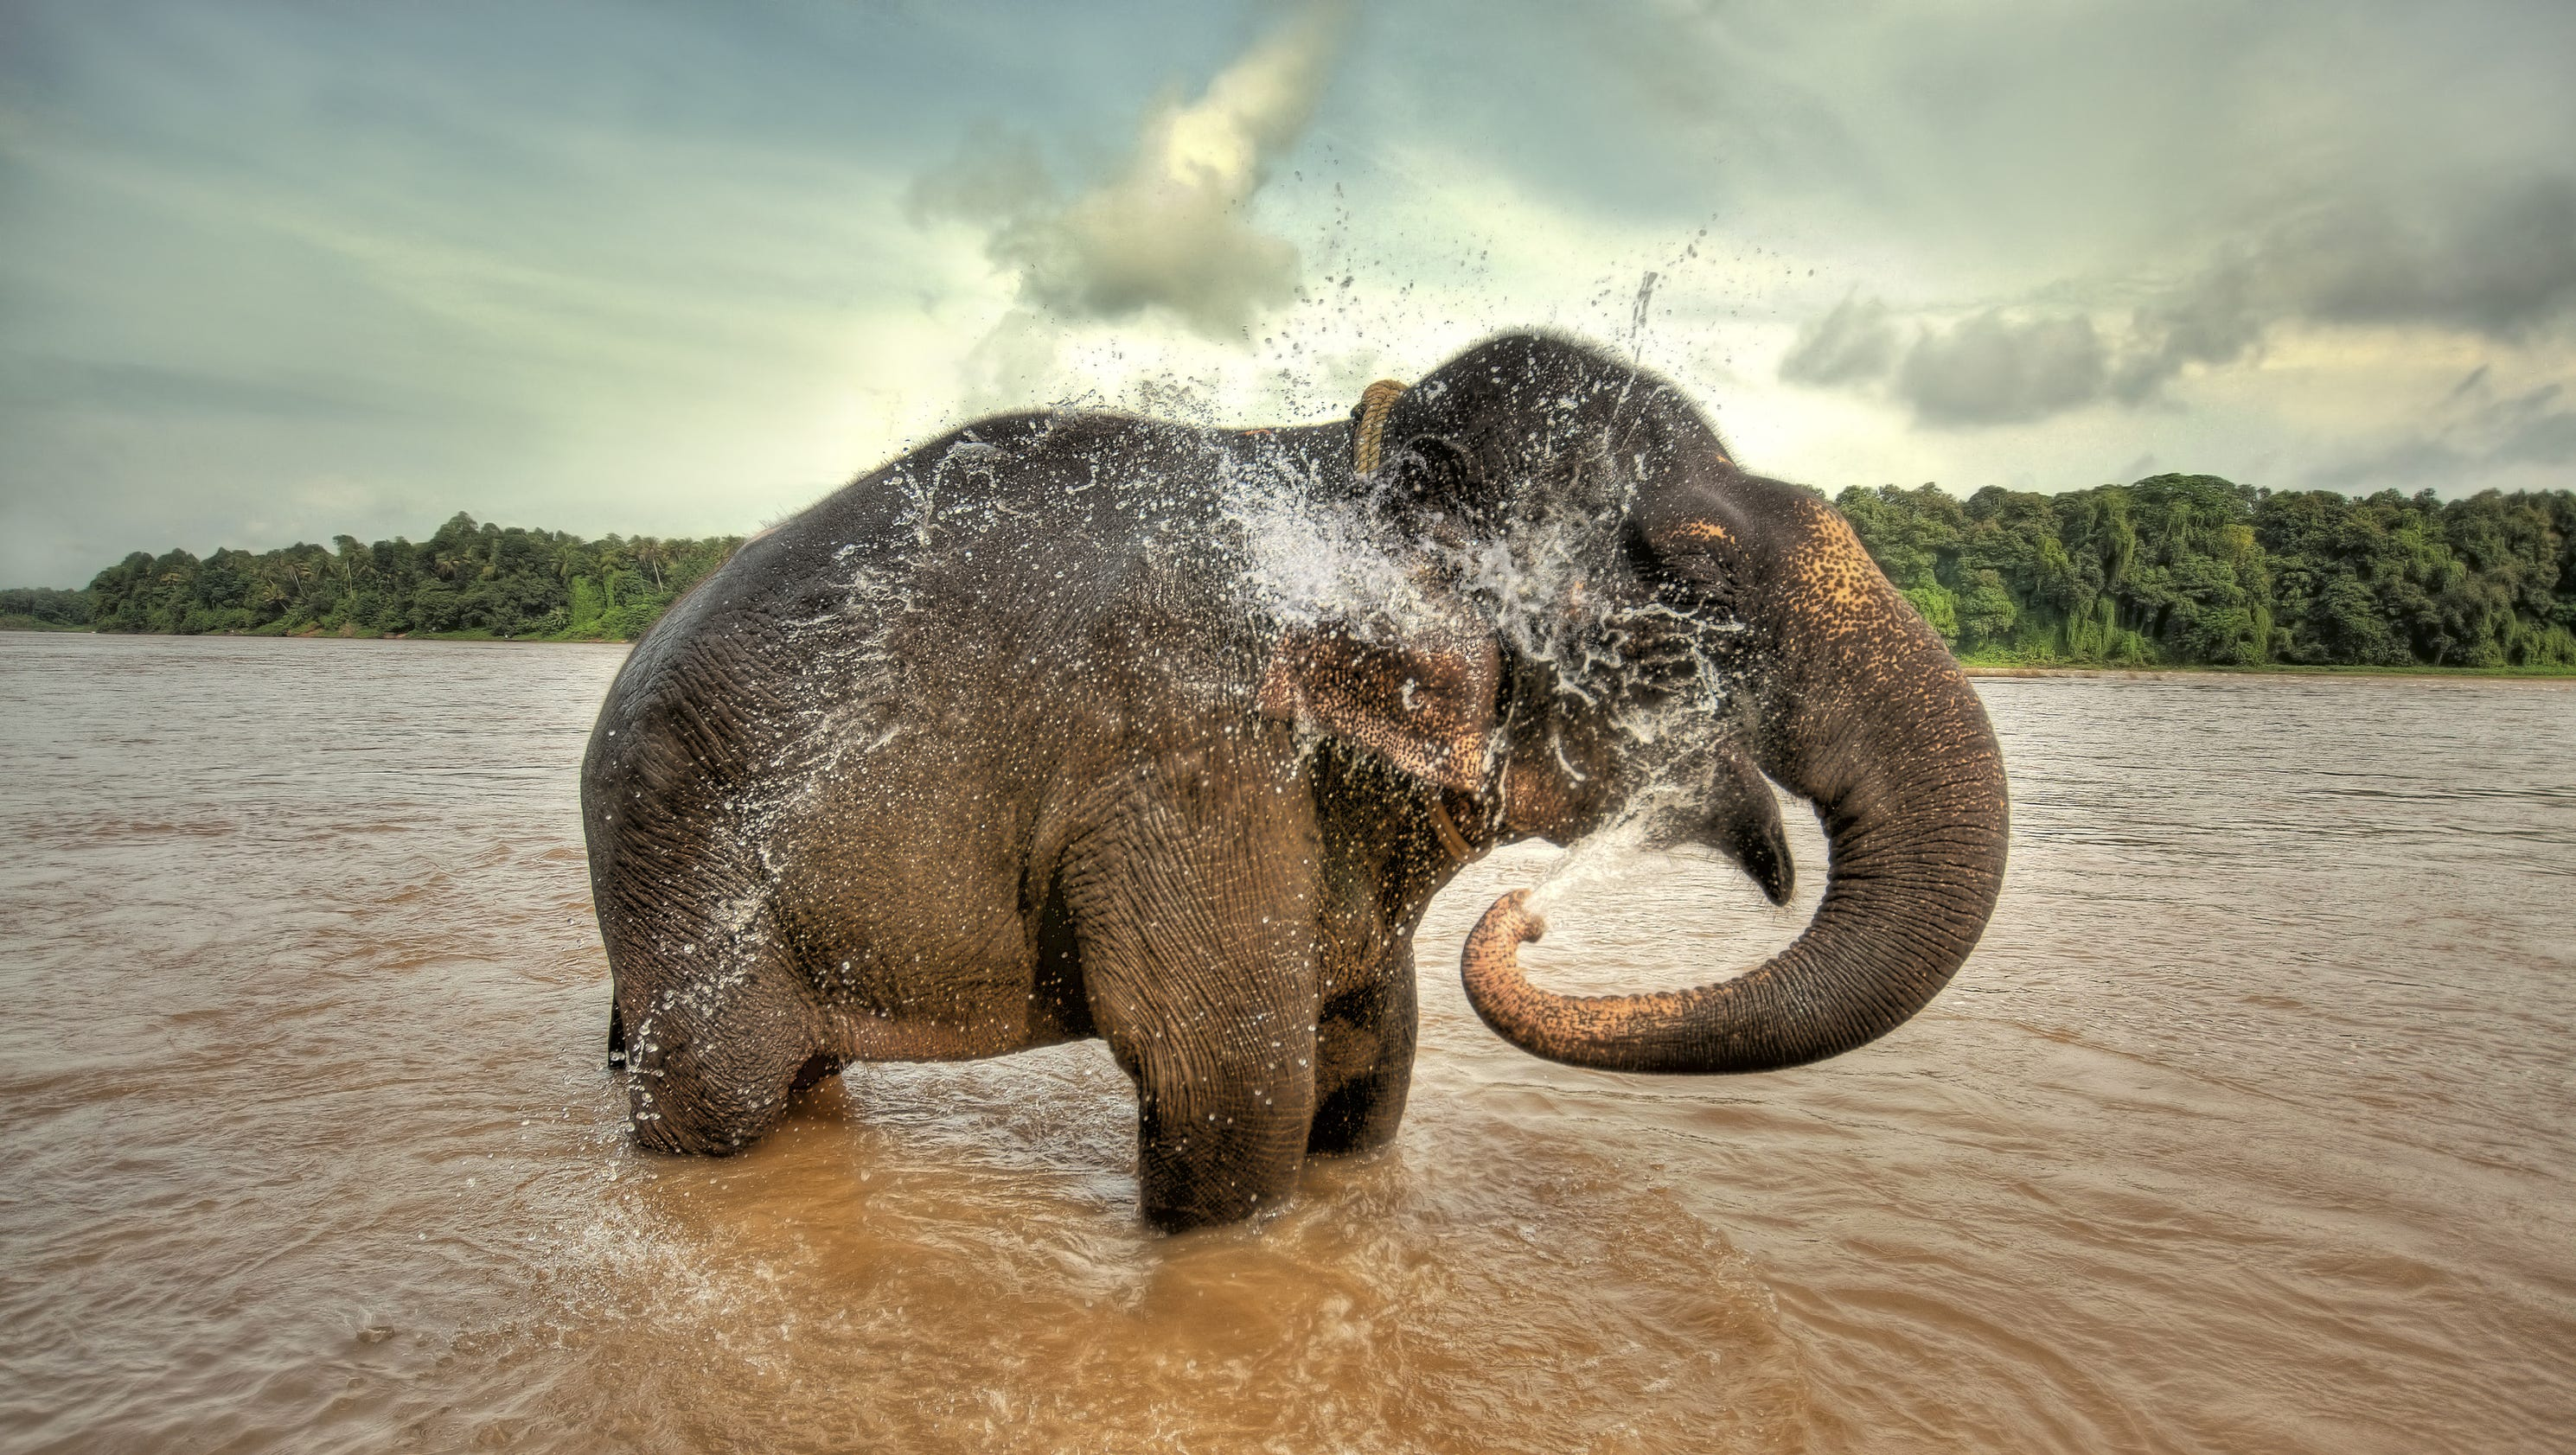 6th mass extinction? Jarring stats on wildlife today